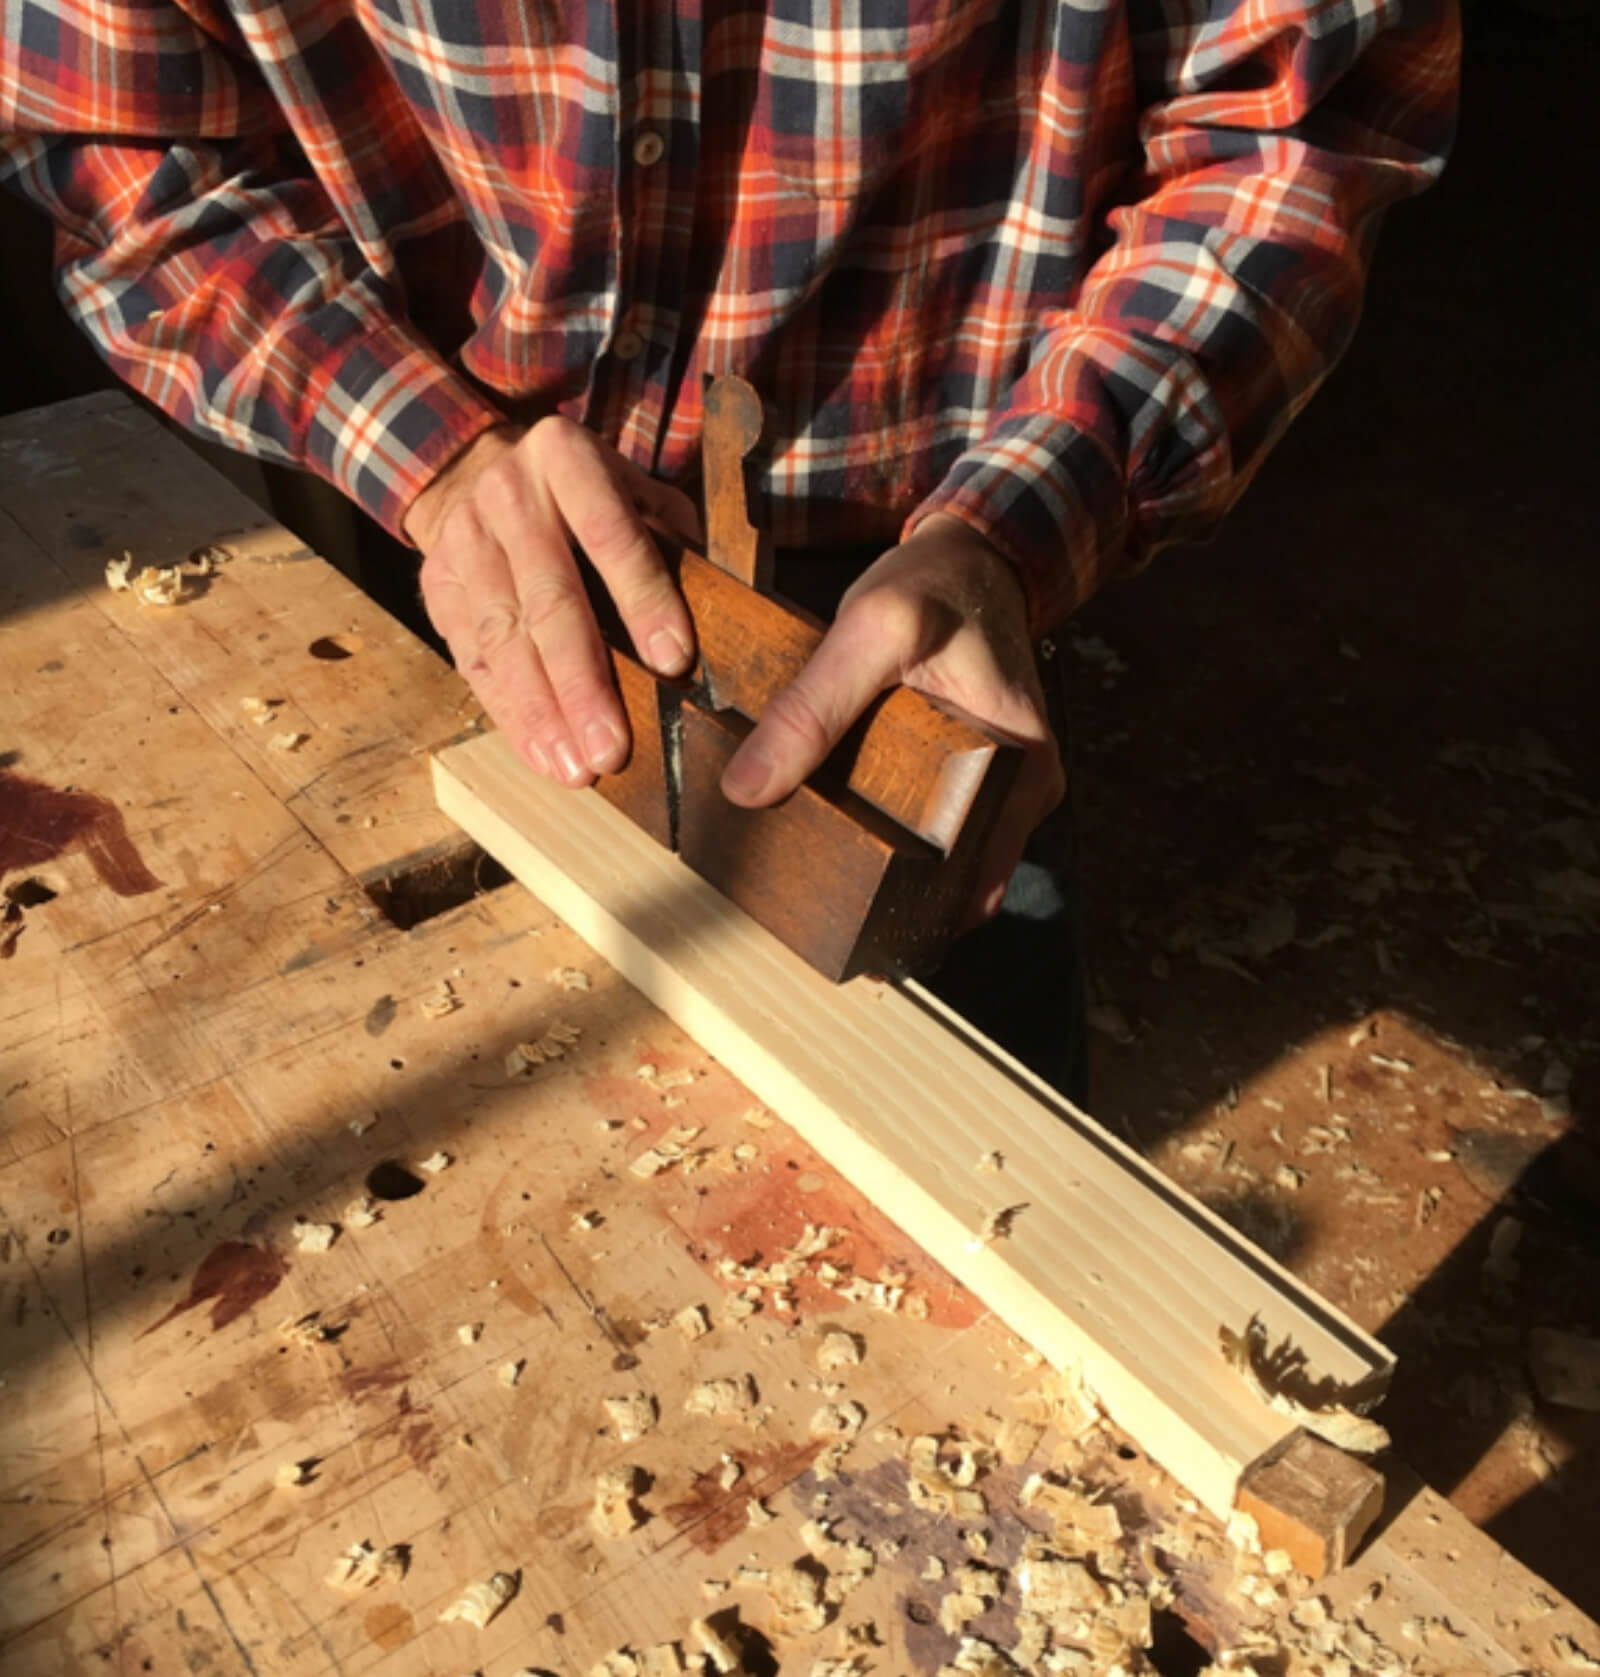 How to use a molding plane